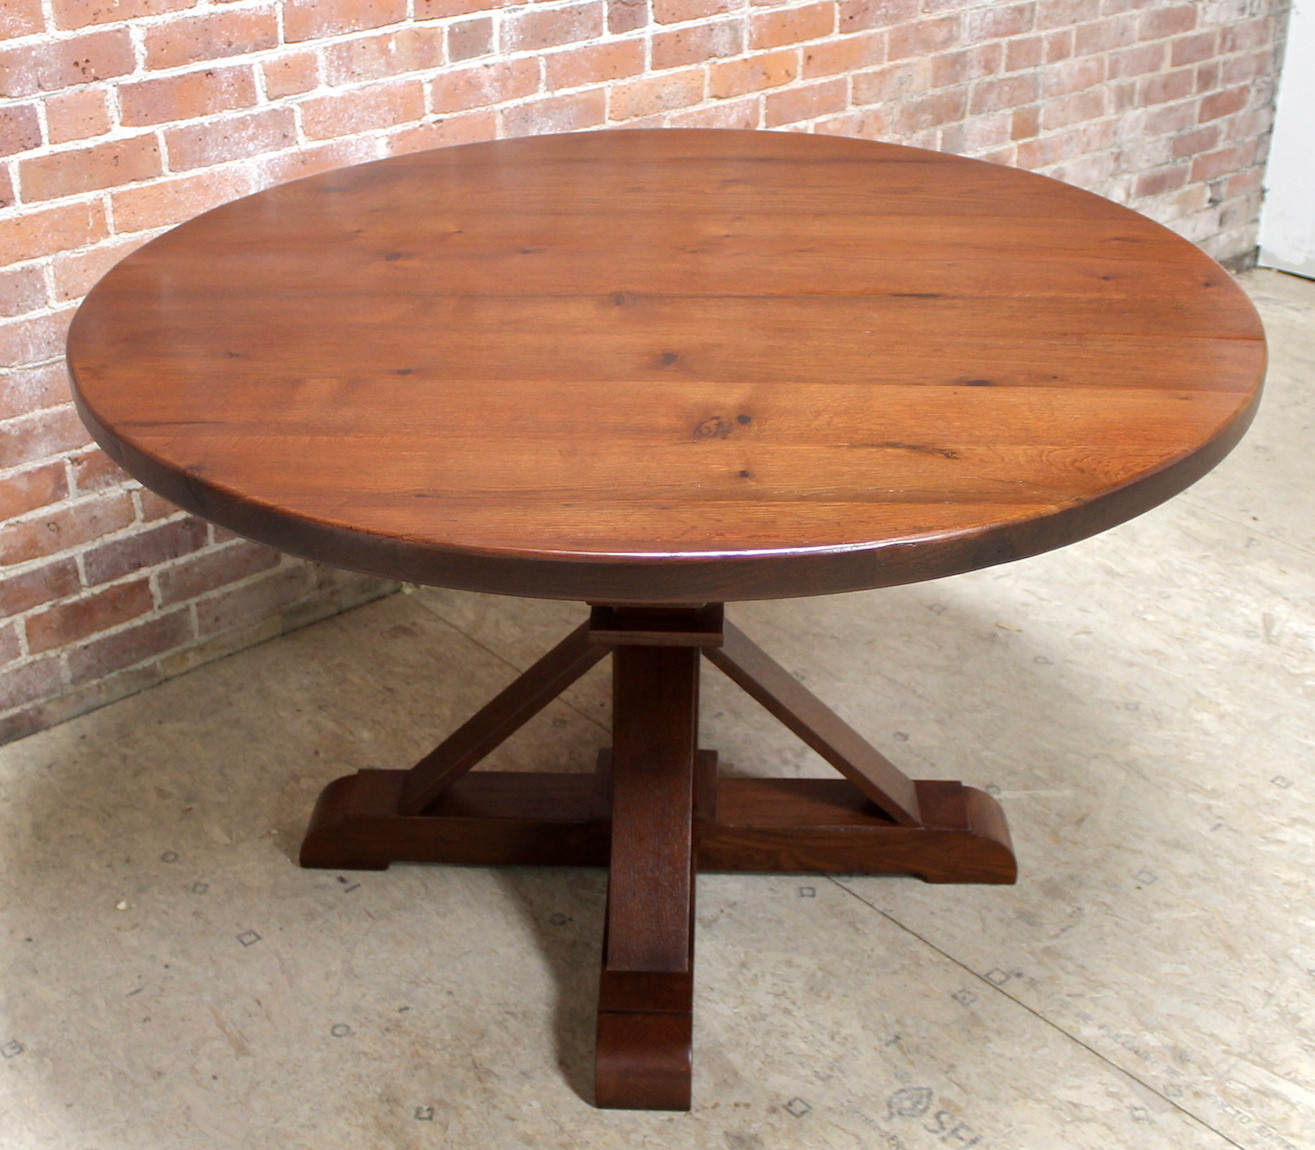 Best ideas about 48 Inch Round Dining Table . Save or Pin 48 inch Round Oak Table with Phoenix Pedestal Now.